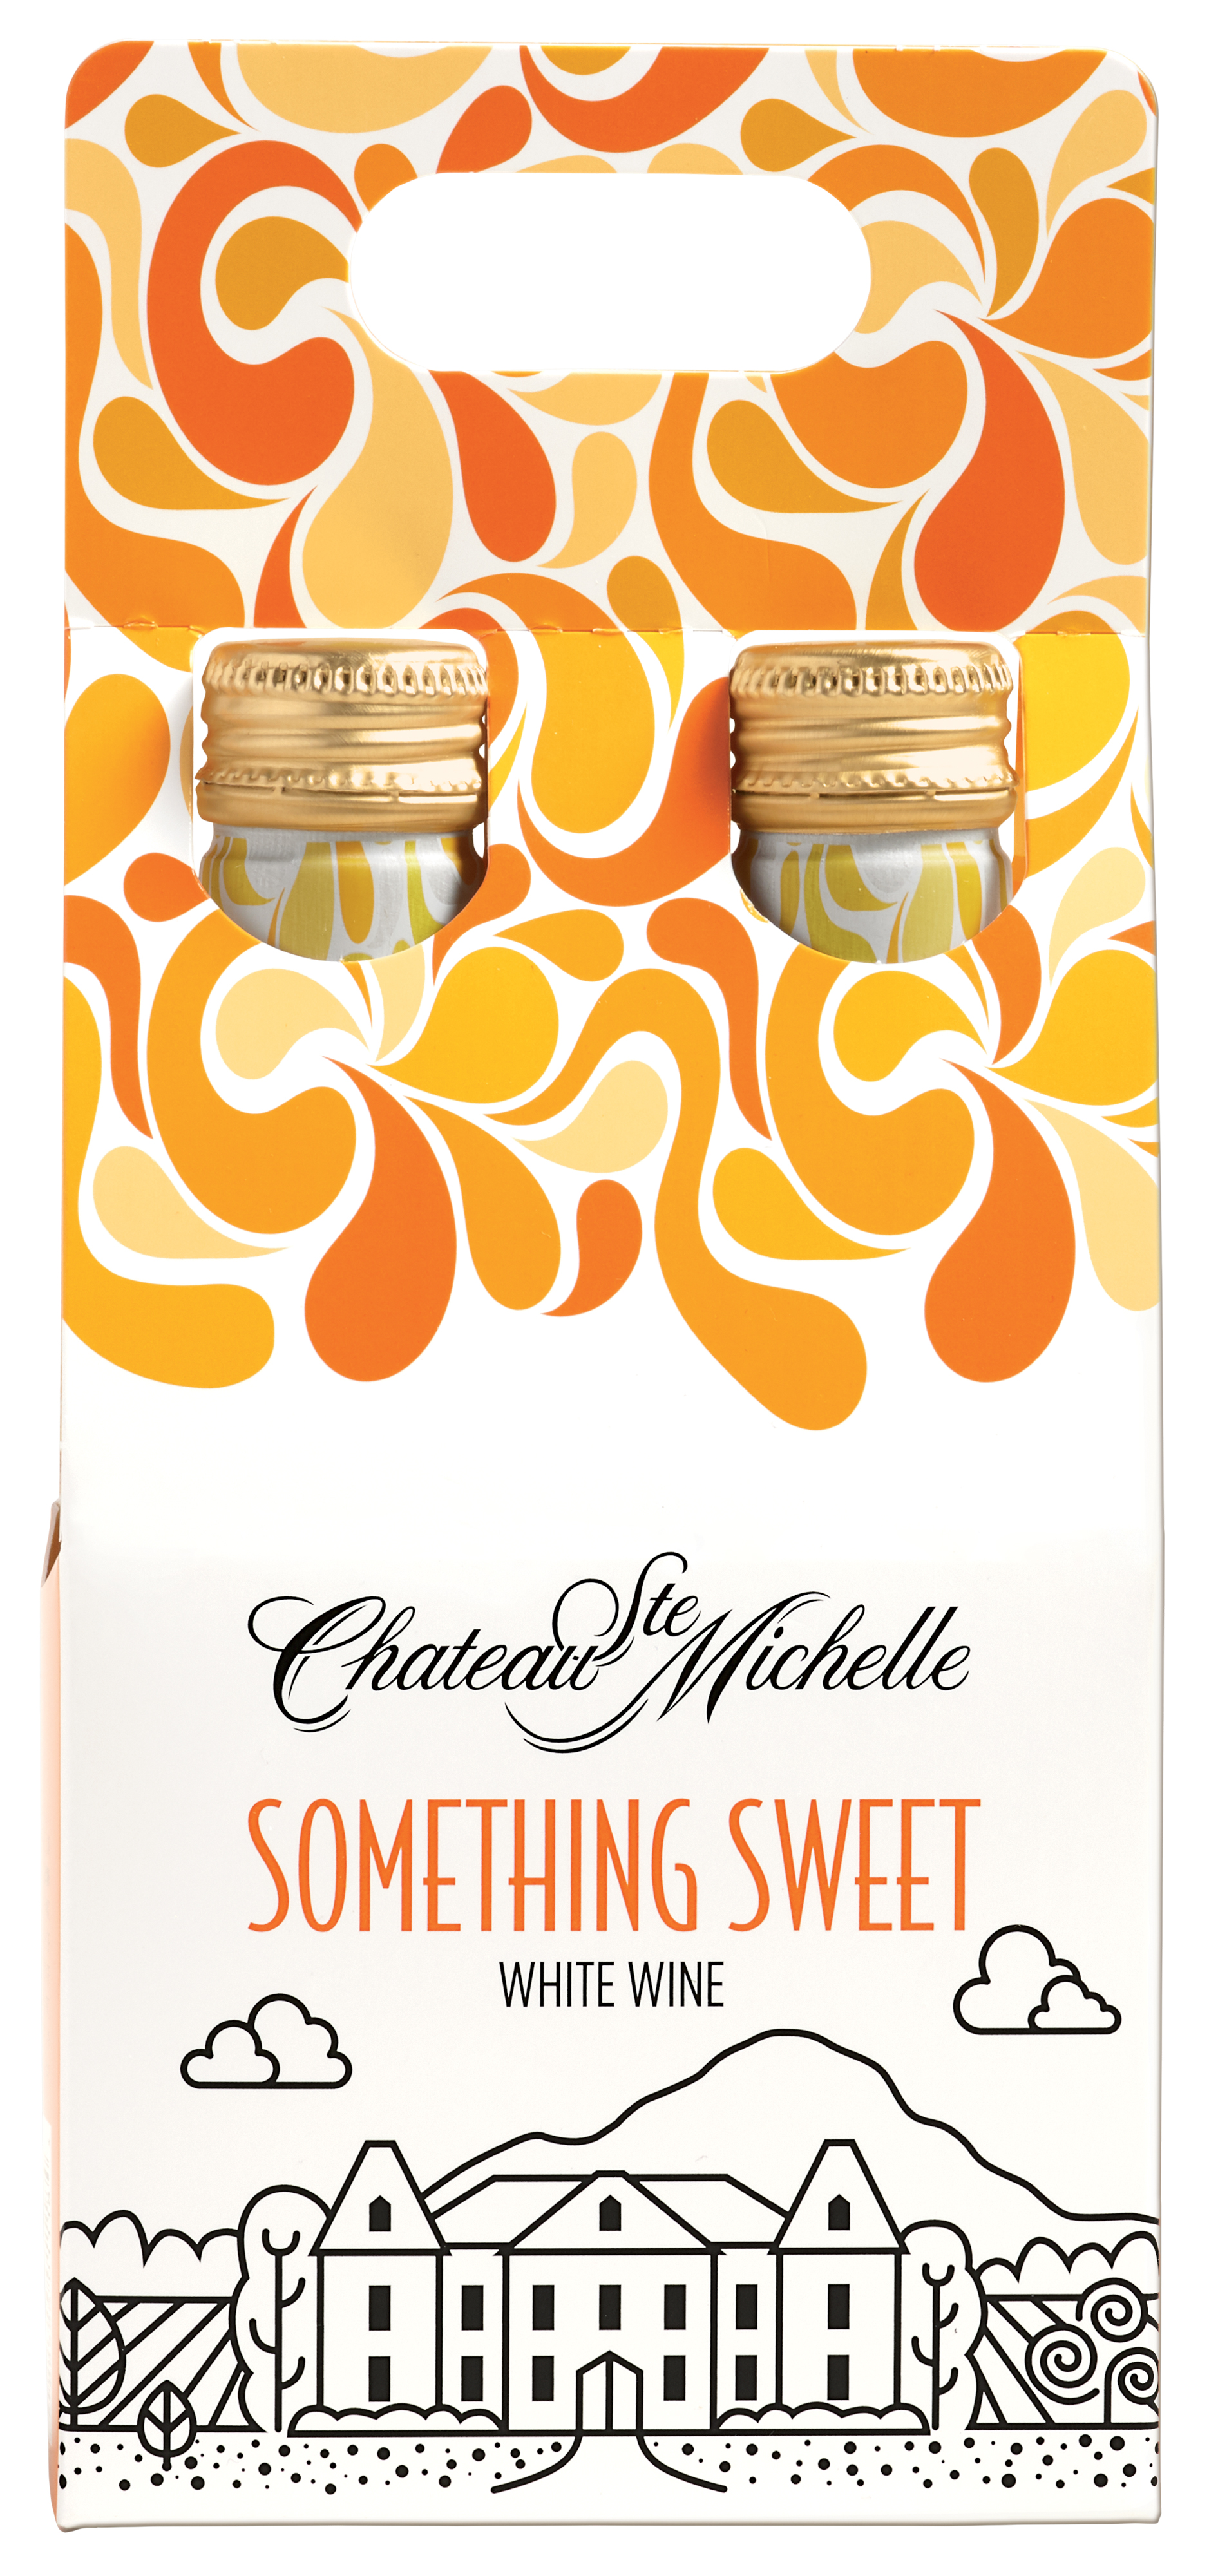 Chateau Ste. Michelle Aluminum Bottles - Something Sweet (Image: Courtesy of{ }Chateau Ste. Michelle Winery)